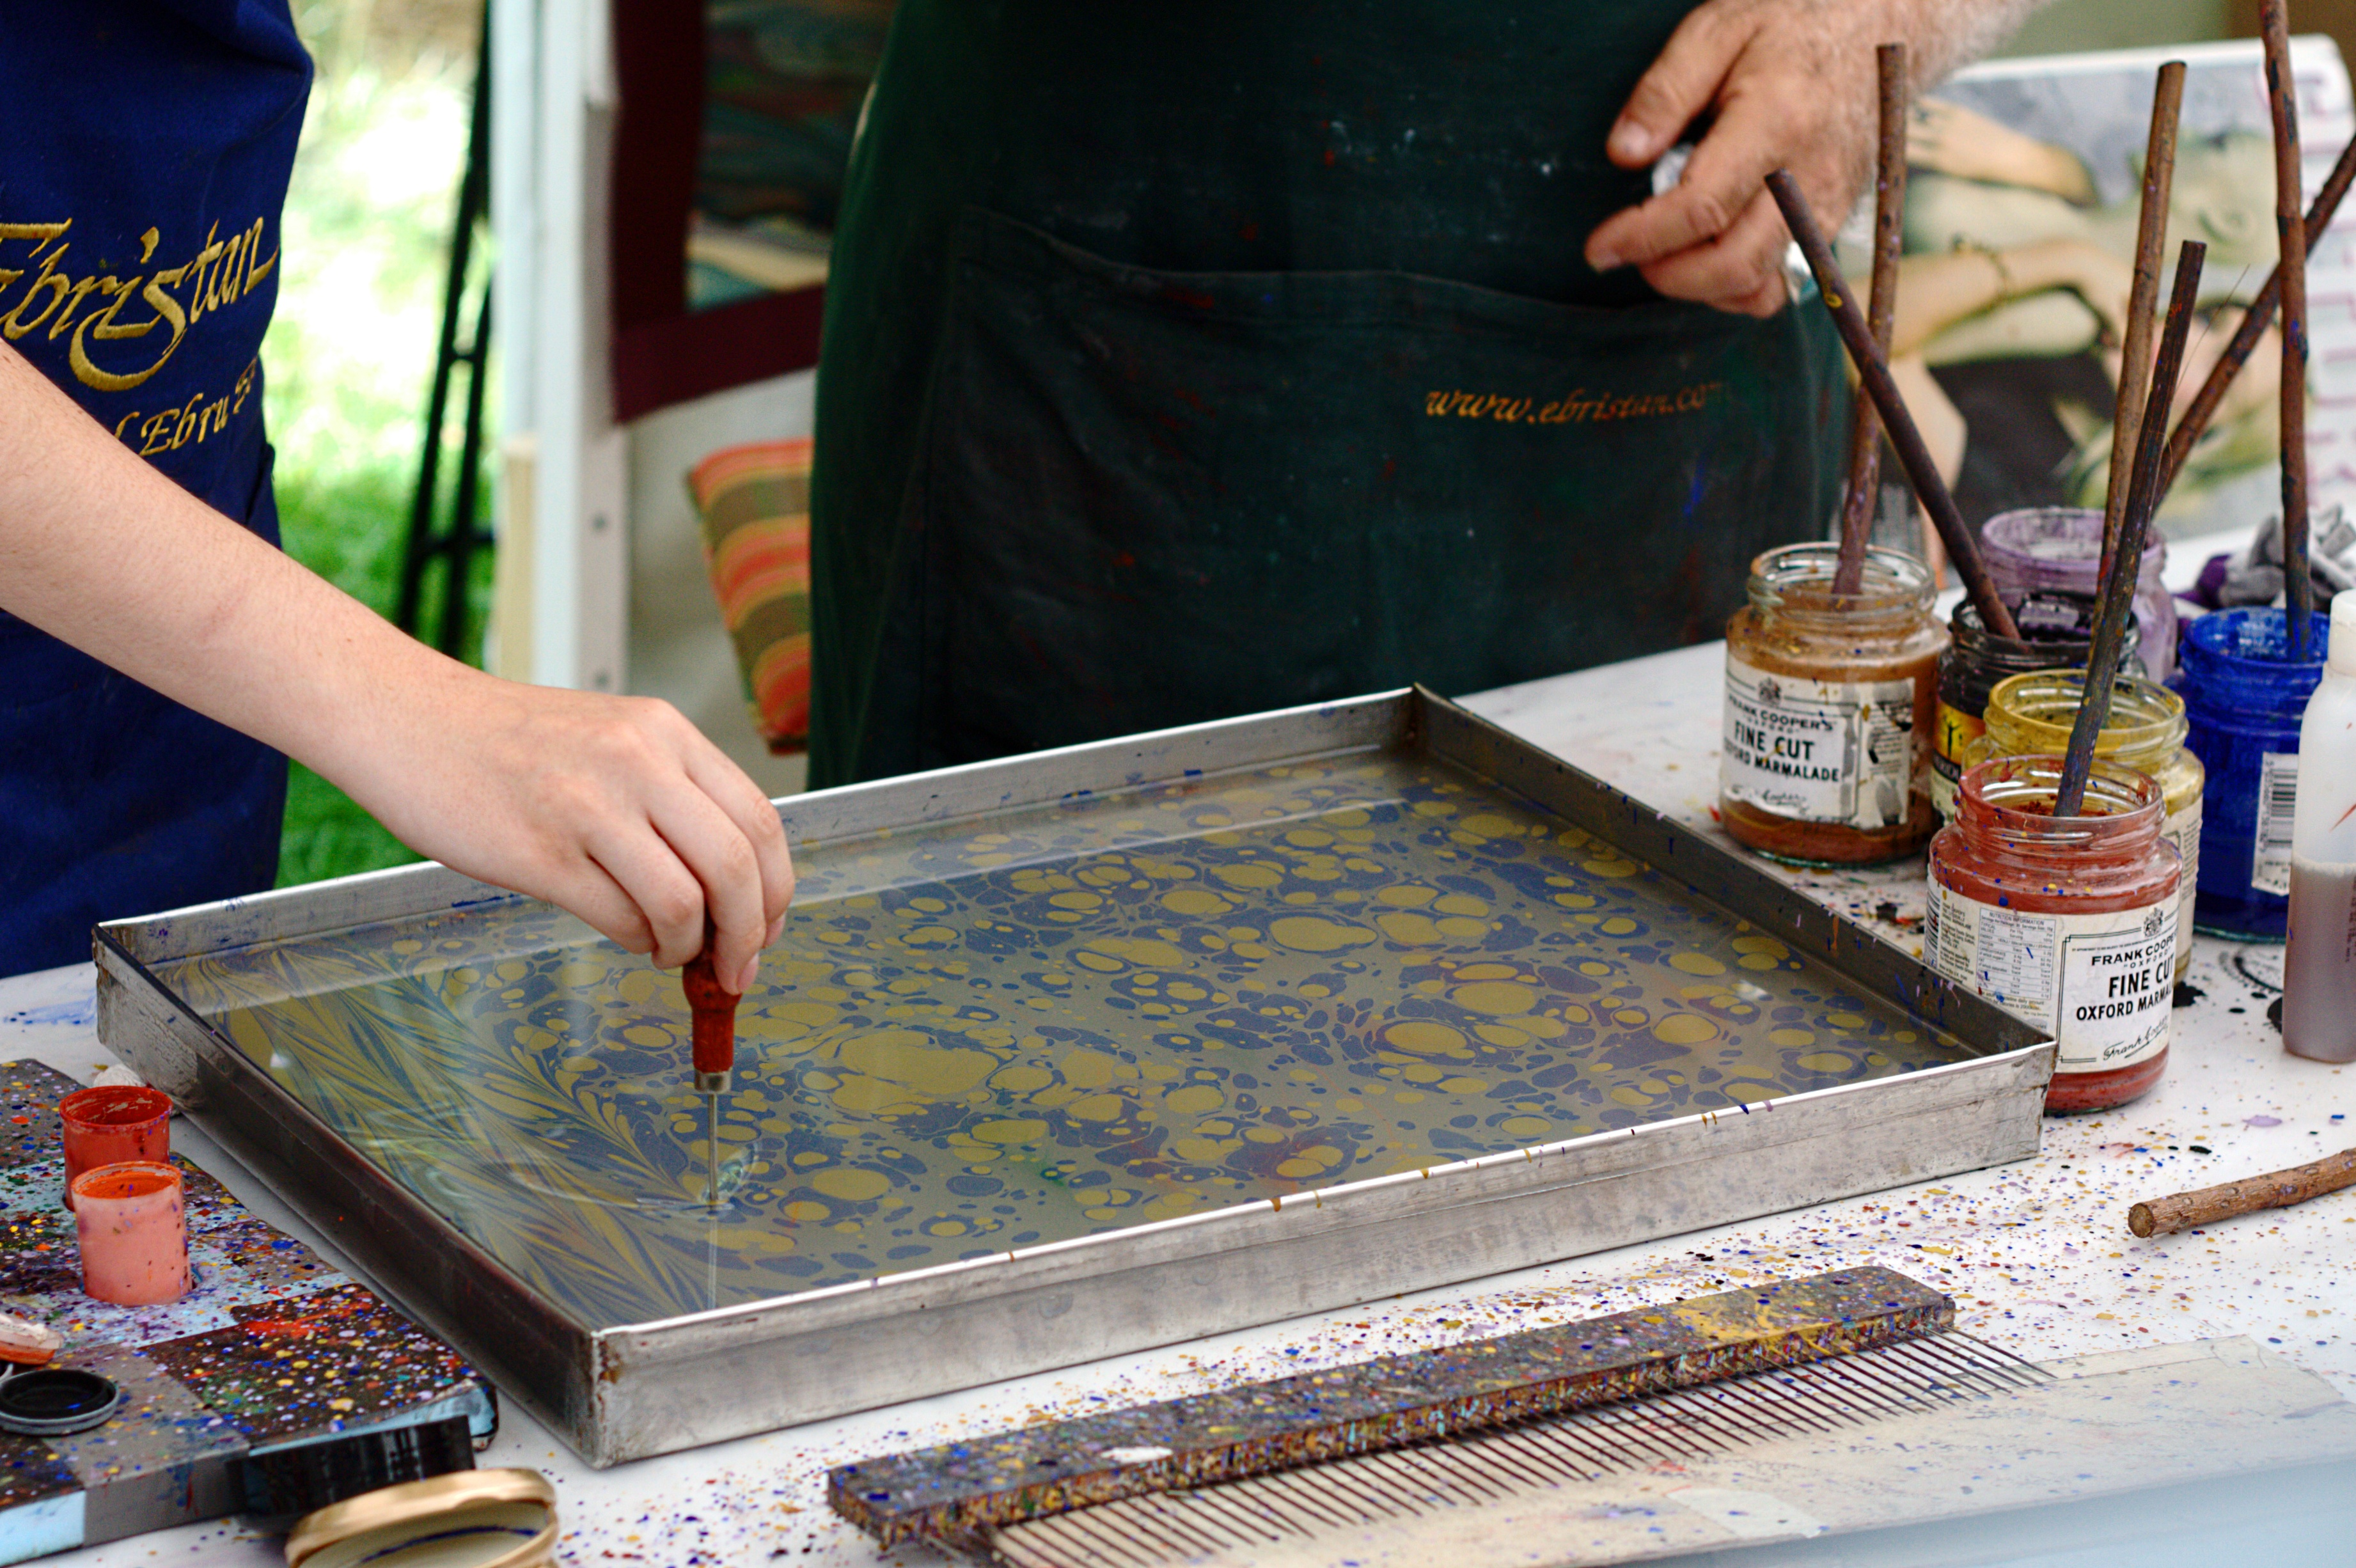 Making Oil Paint Using Sprinkles And Cooking Oil